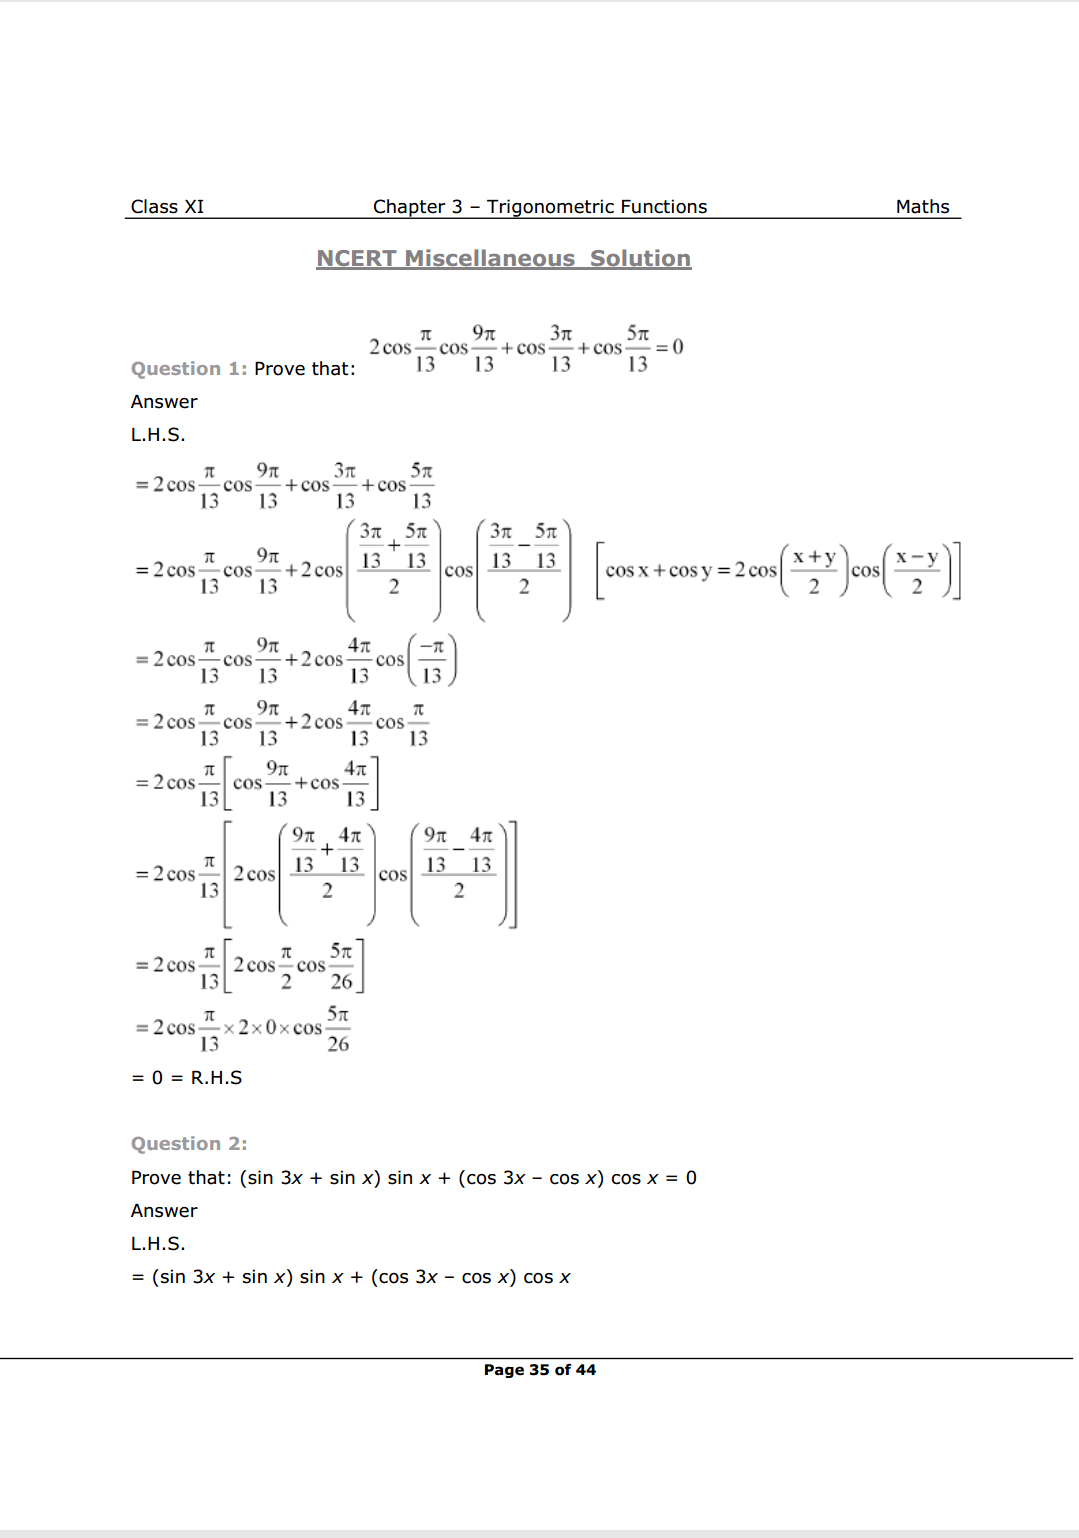 Class 11 maths Chapter 3 Miscellaneous Solutions Image 1